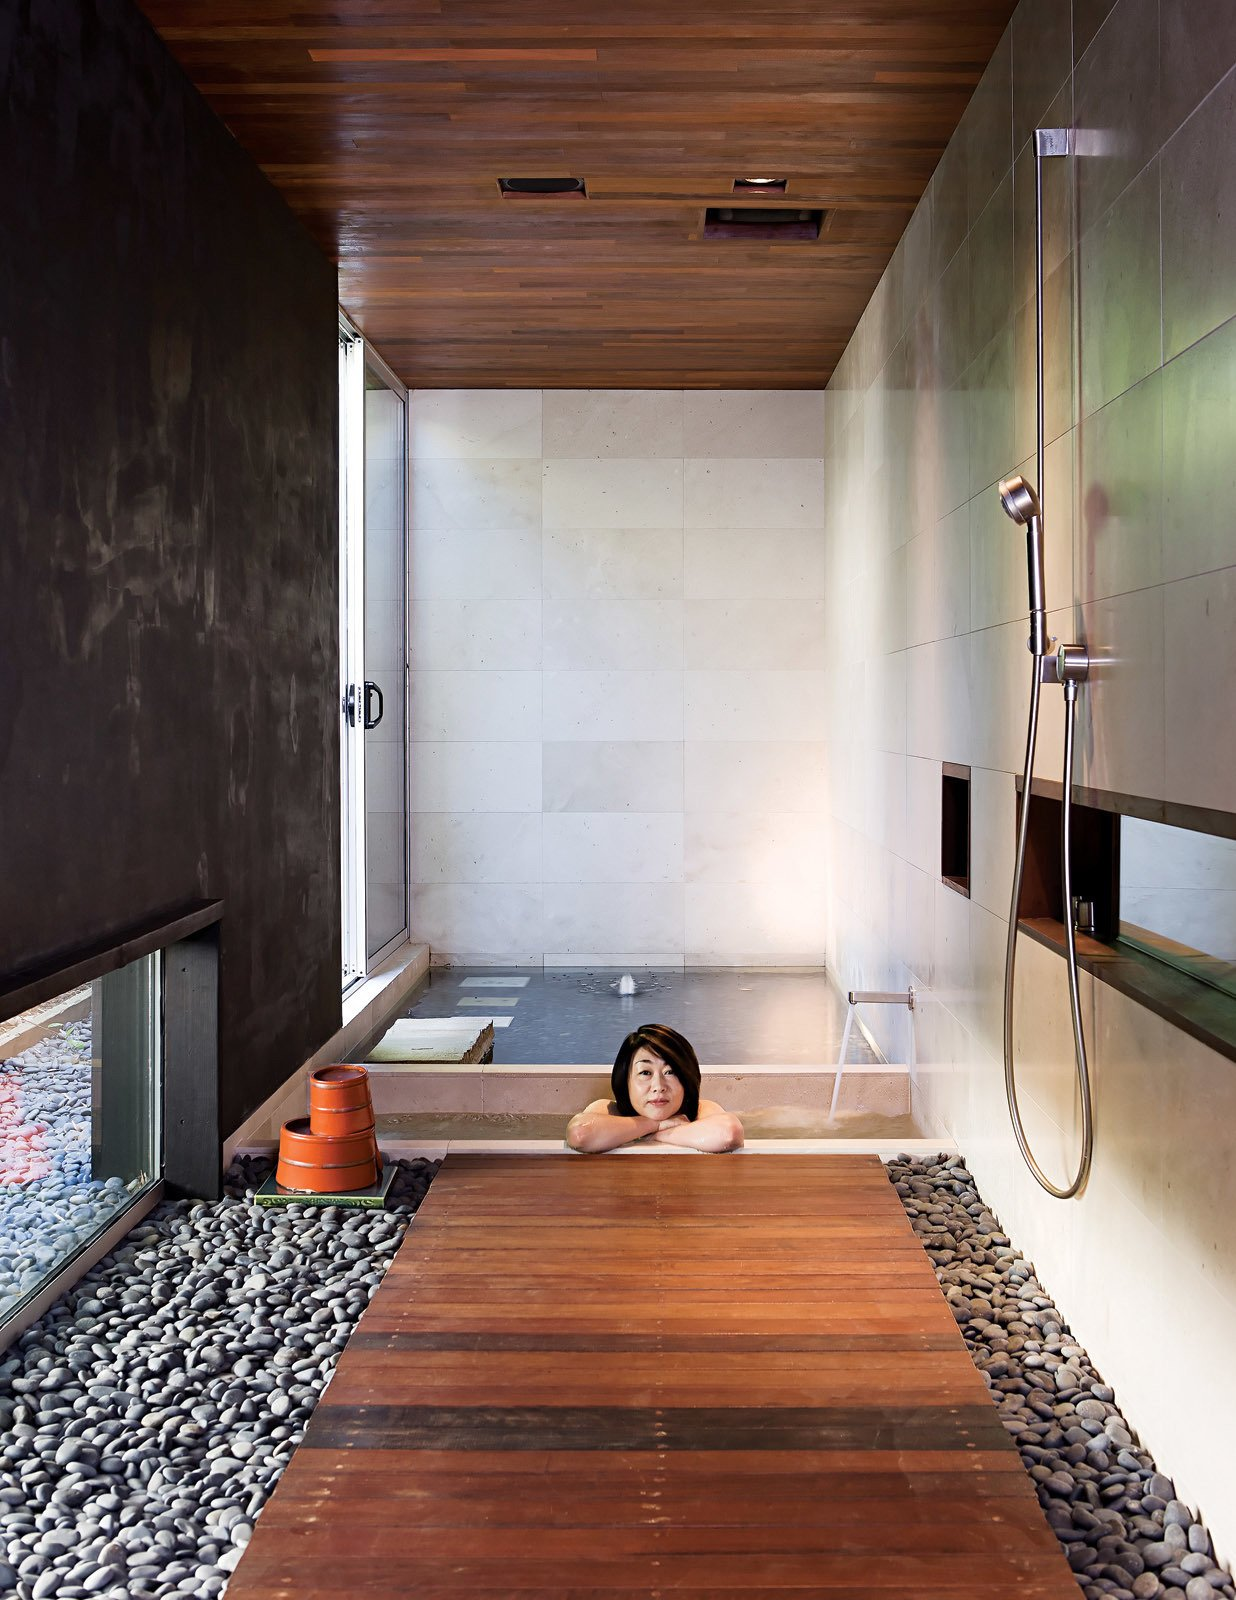 Bath Room, Ceramic Tile Wall, and Medium Hardwood Floor #modern #moderndesign #bath&spa #bathroom #interior #shower #pebblewalkway #bath #japanese #japanesestyle #soakingtub #woodflooring #dornbracht   Best Photos from Bath & Spa Intrigue